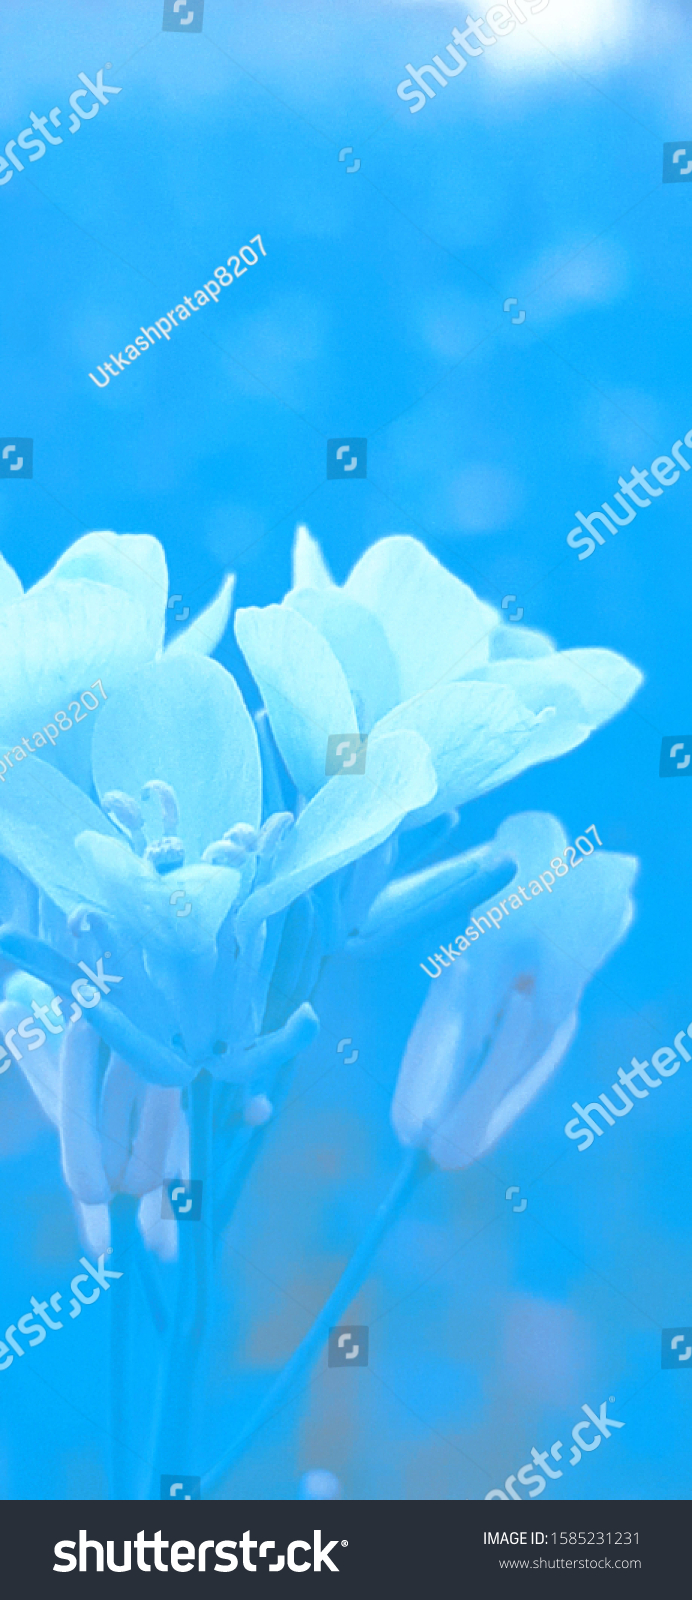 stock photo blue and white samsung galaxy a wallpaper 1585231231